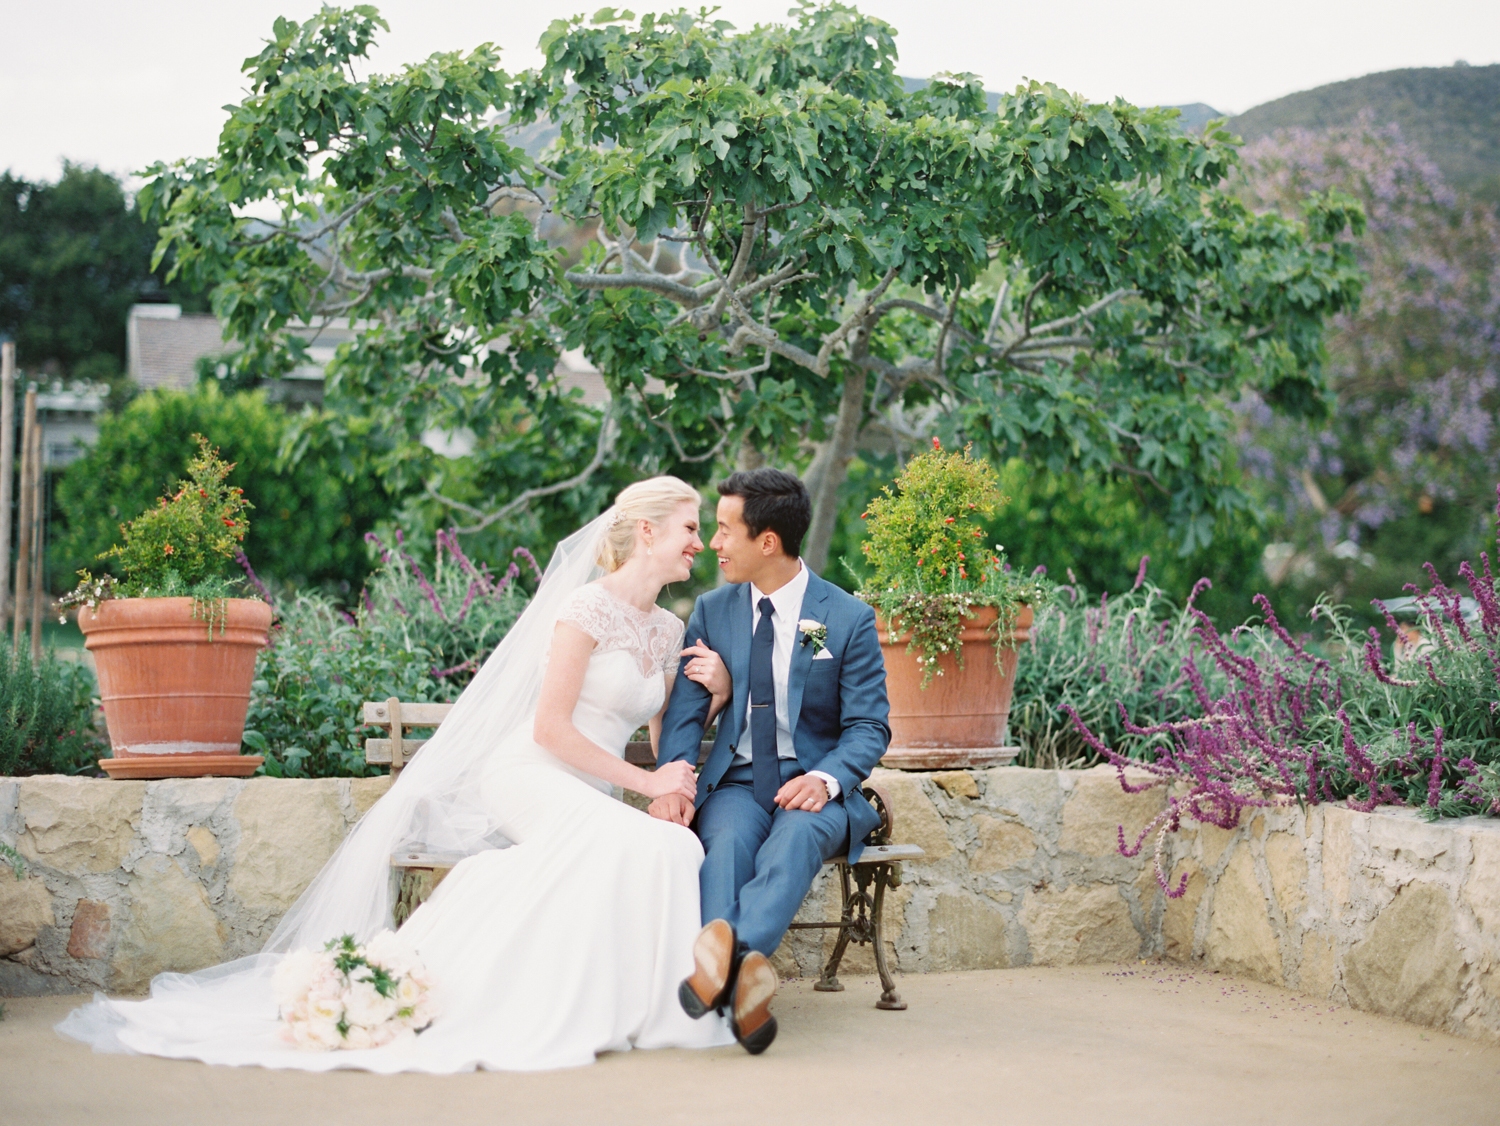 09 San Ysidro Ranch Wedding Planned Joy Proctor.JPG